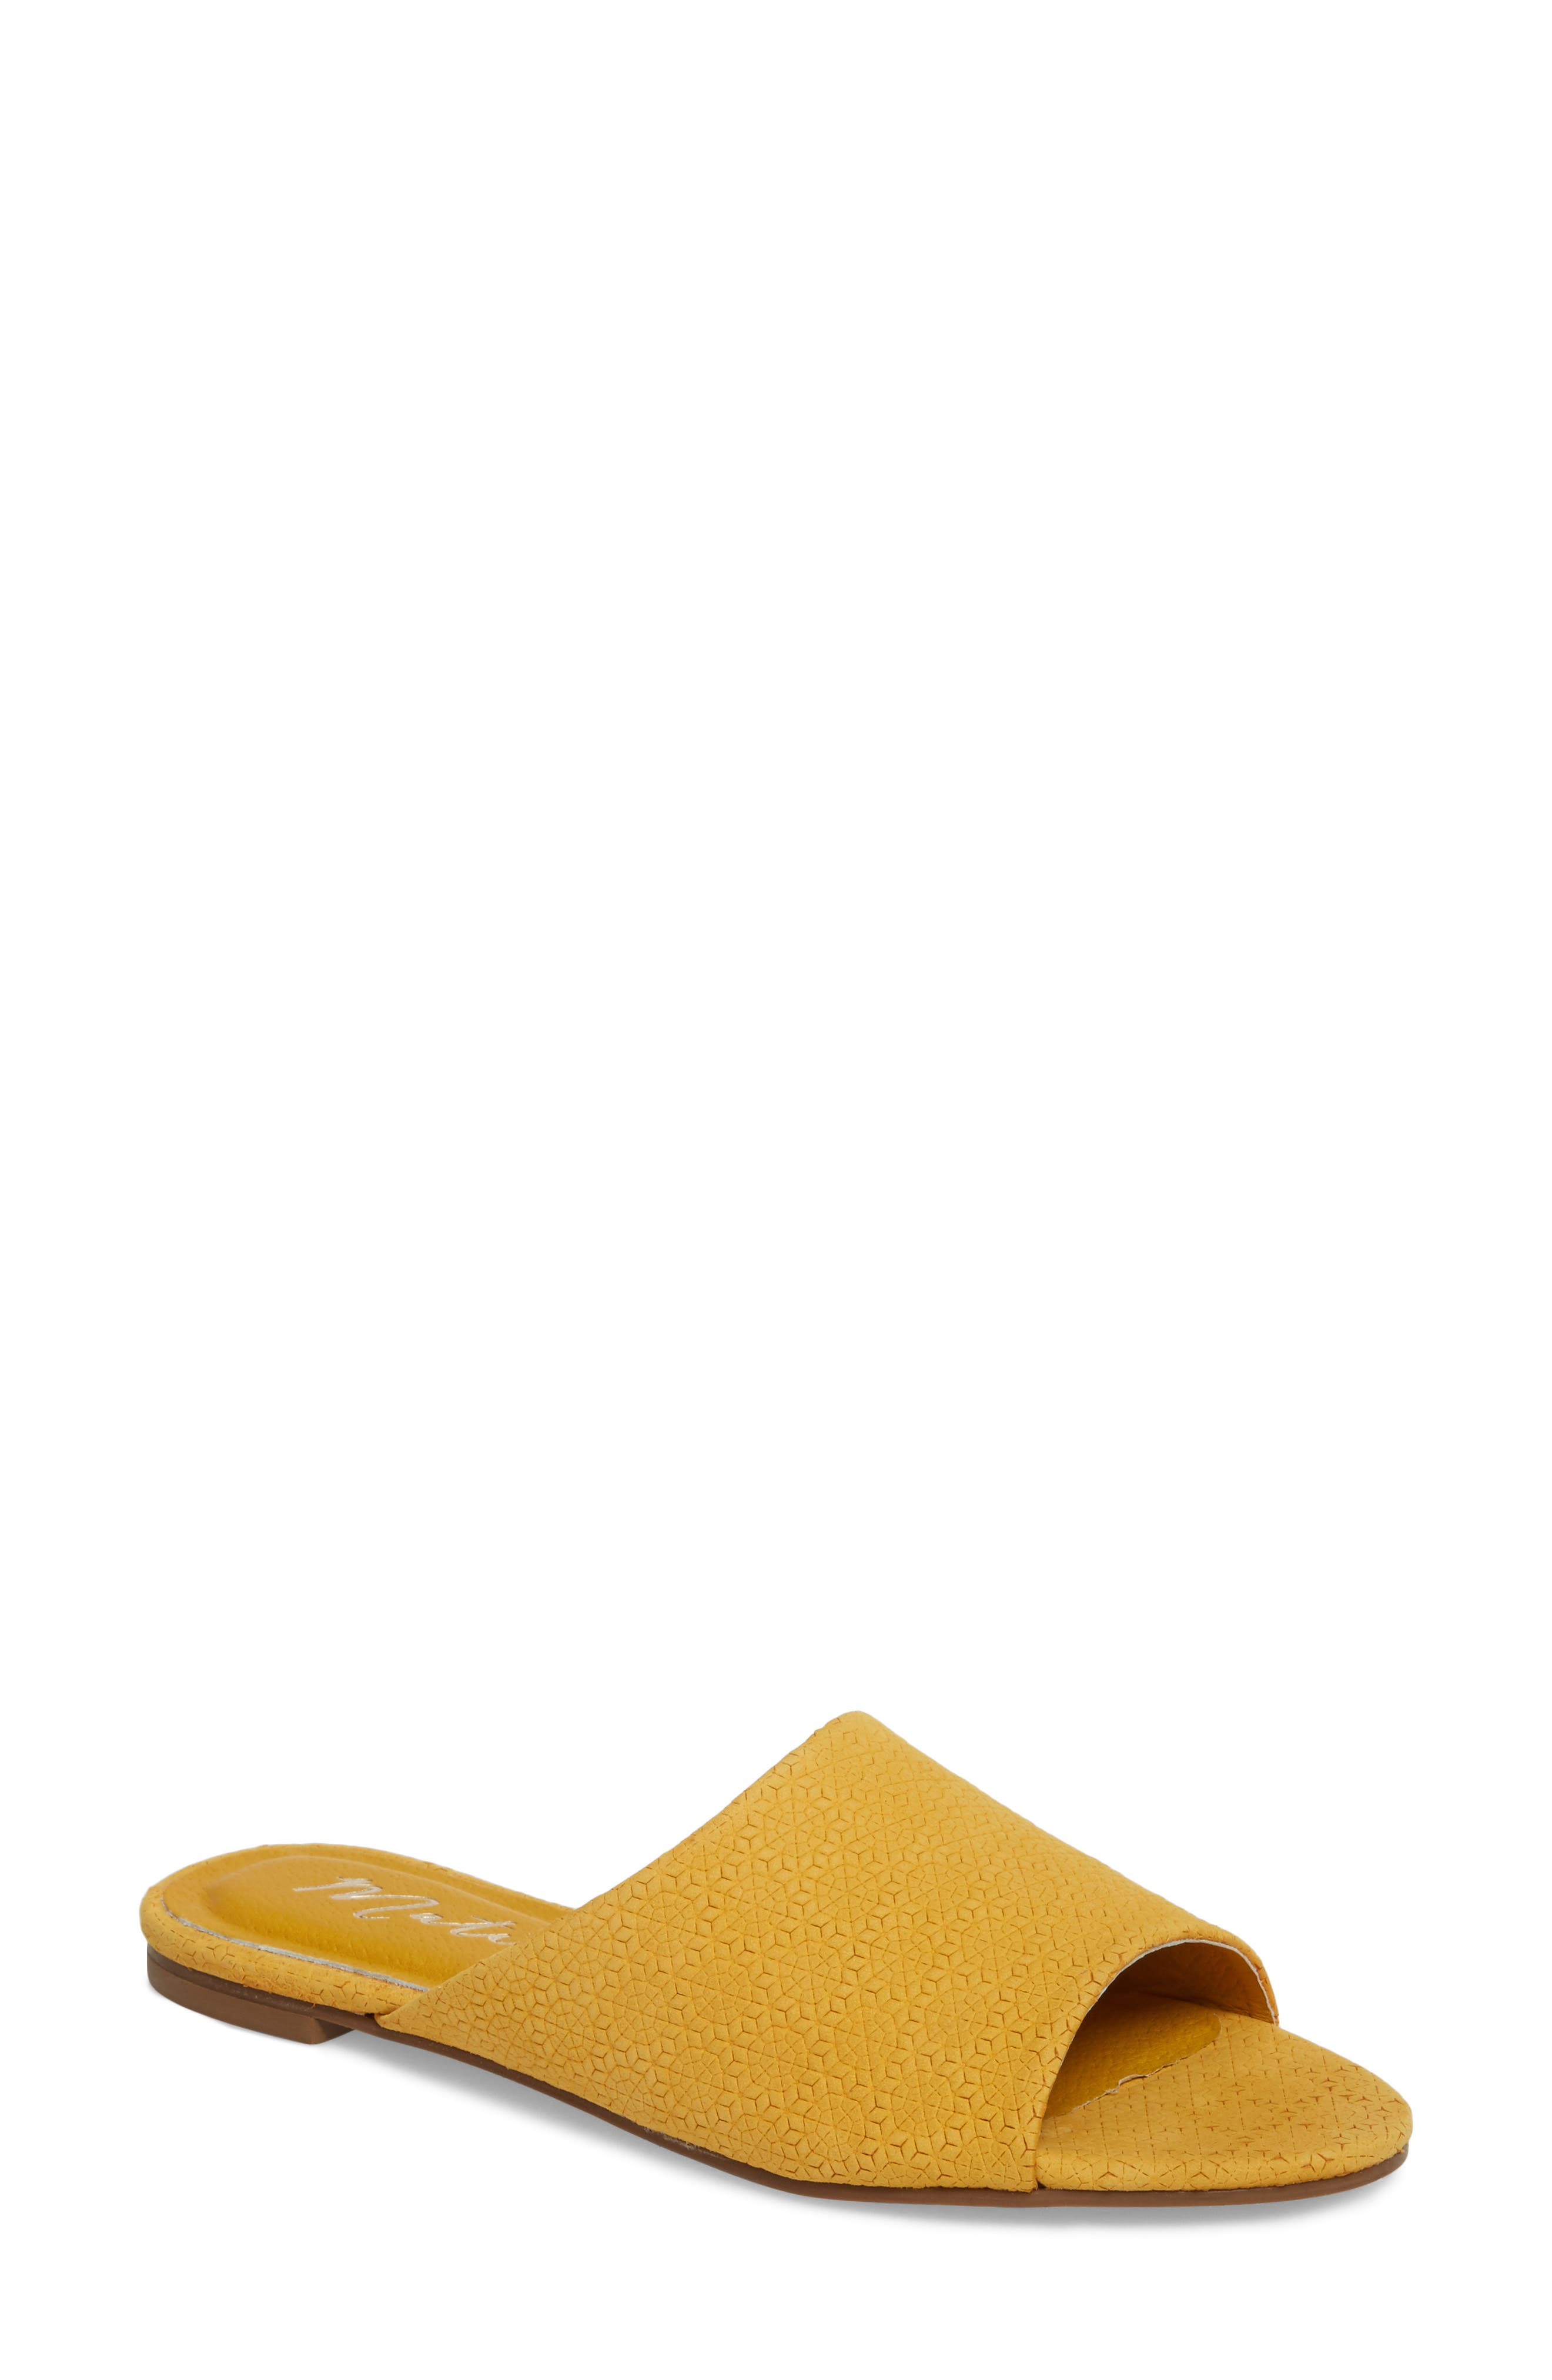 Lira Sandal,                         Main,                         color, MANGO LEATHER